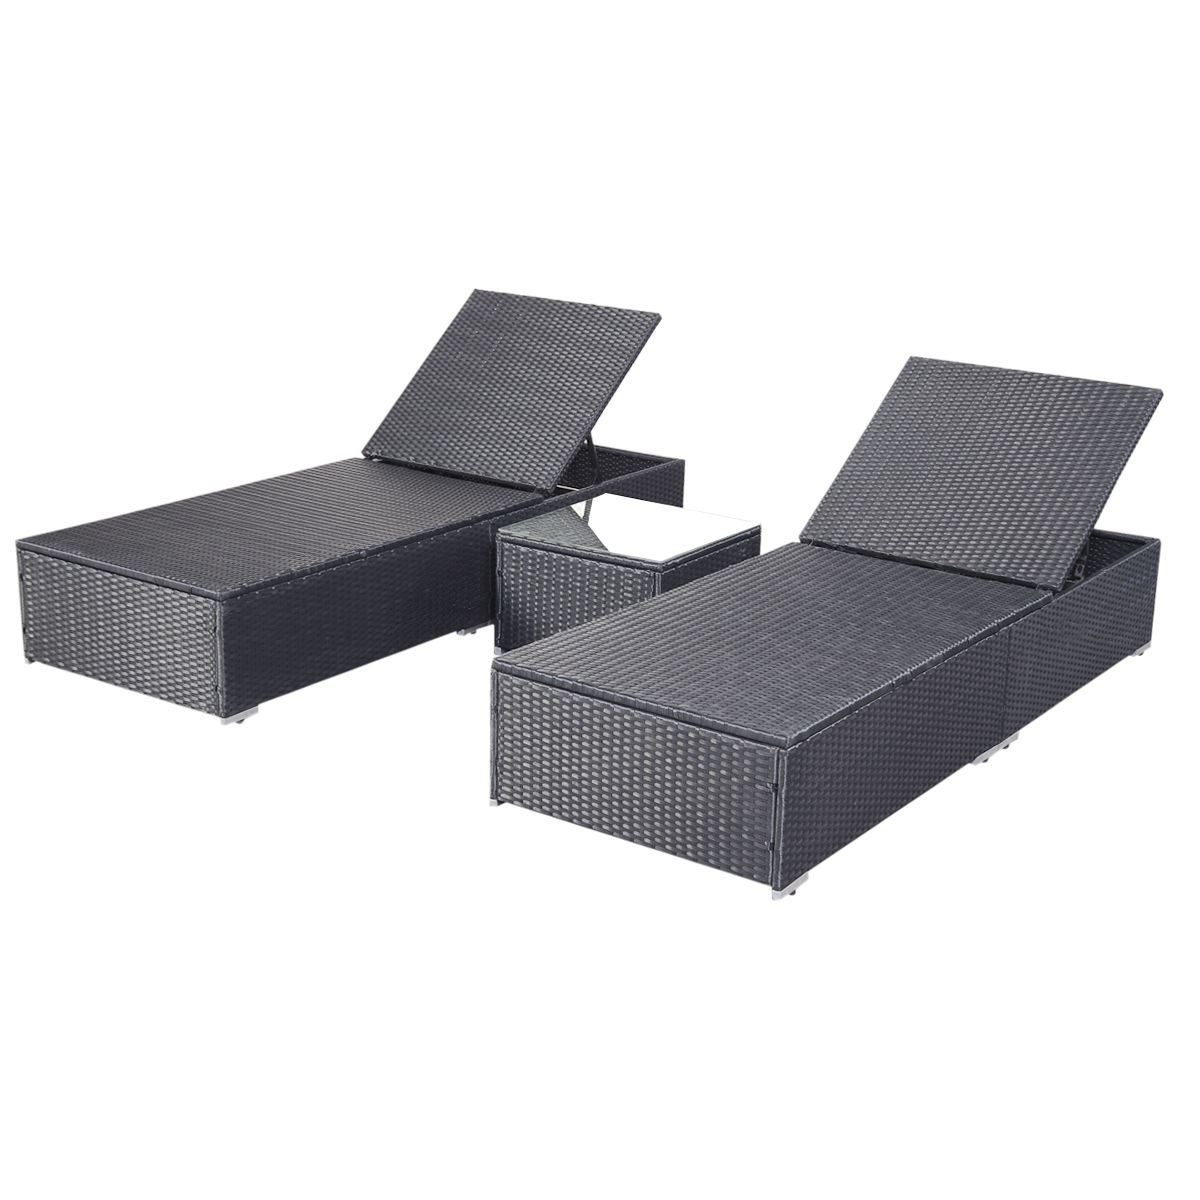 Grey Wicker Chaise Lounge Chairs With Regard To Newest Grey Wicker Lounge Chairs • Lounge Chairs Ideas (View 5 of 15)